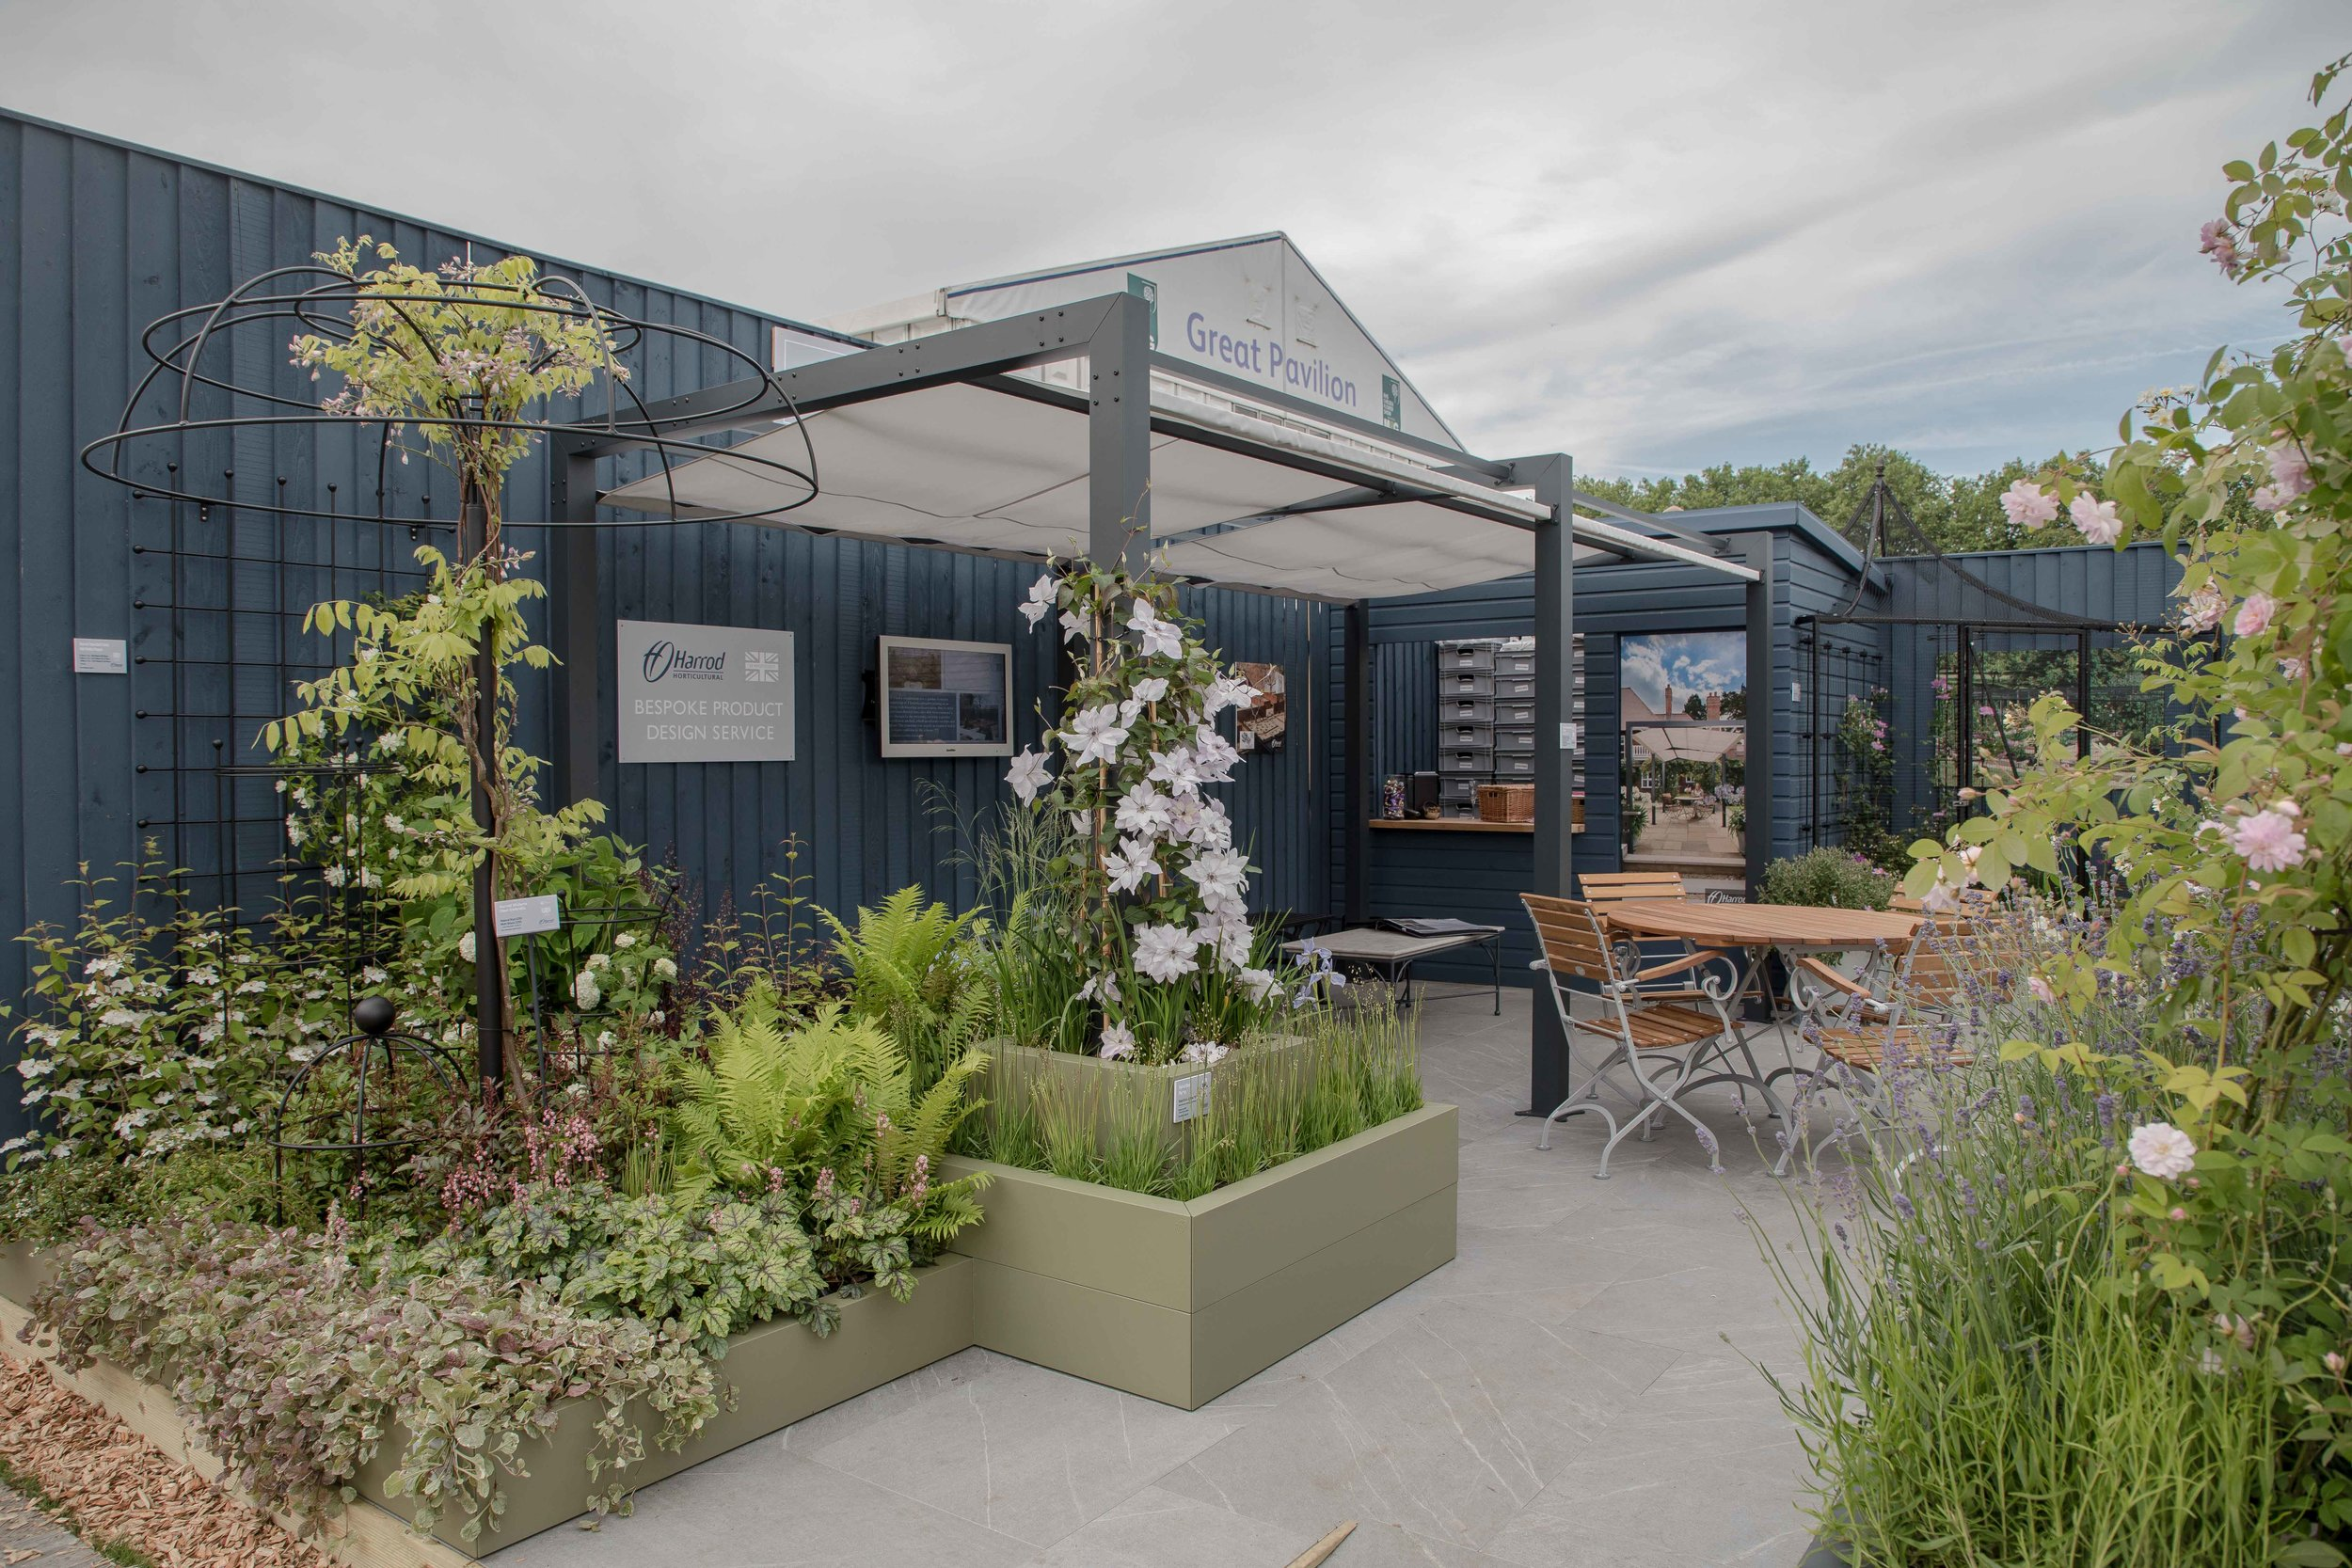 The Harrod Horticultural stand at this years Chelsea Flower Show